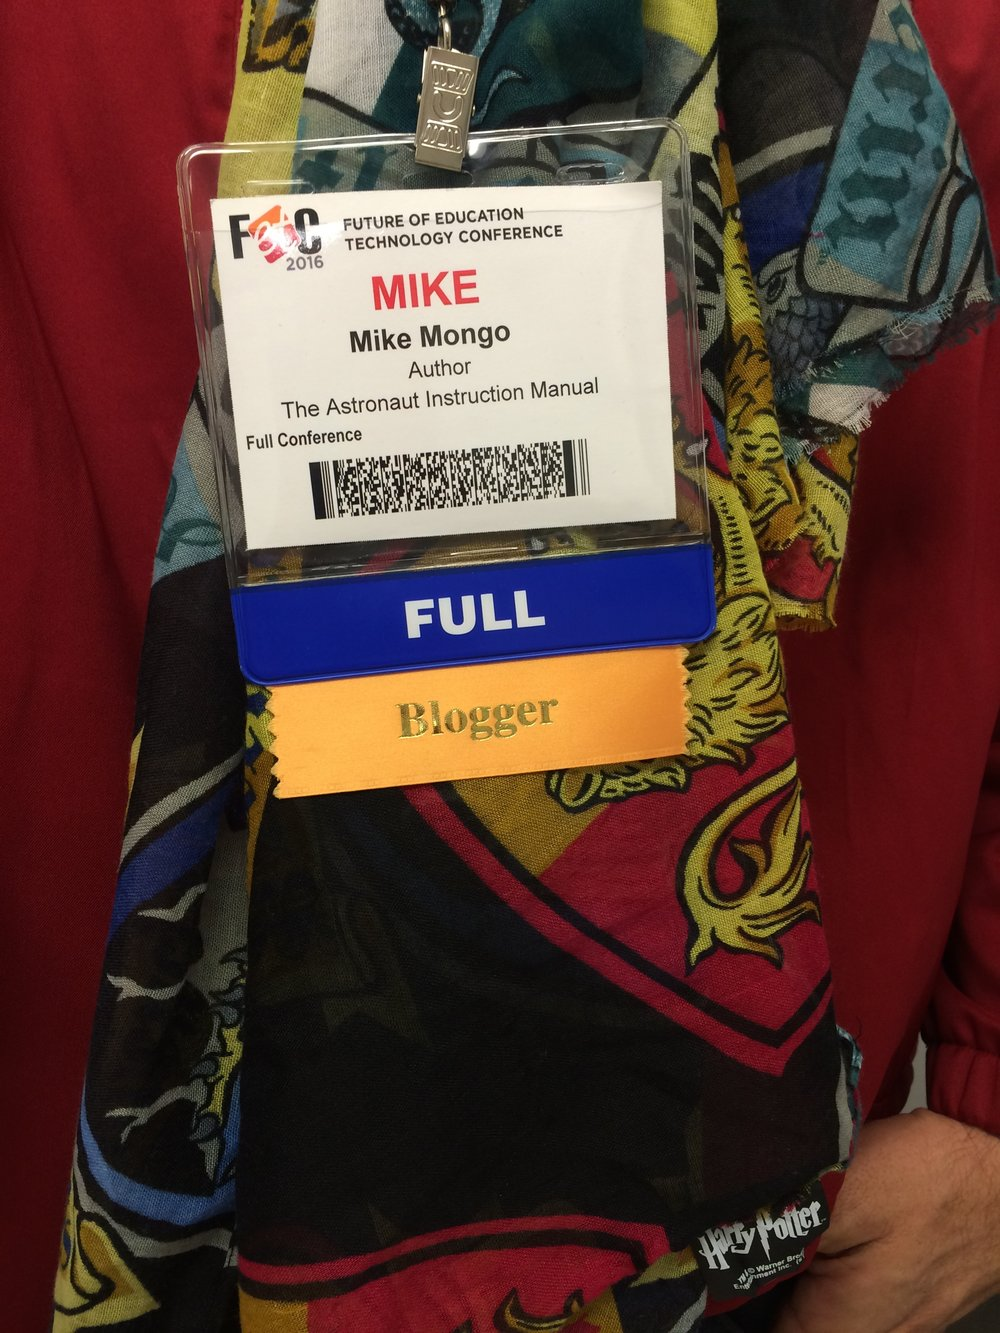 FETC badge